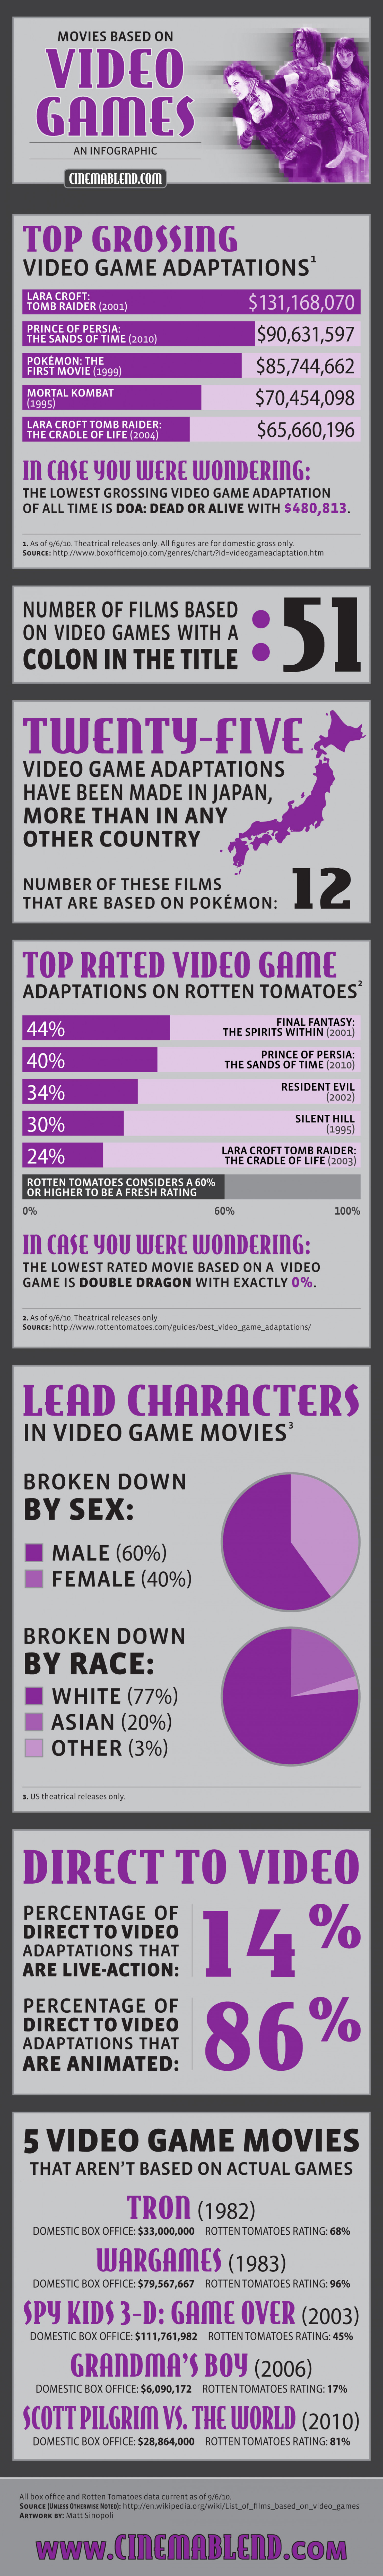 Movies Based on Video Games Infographic